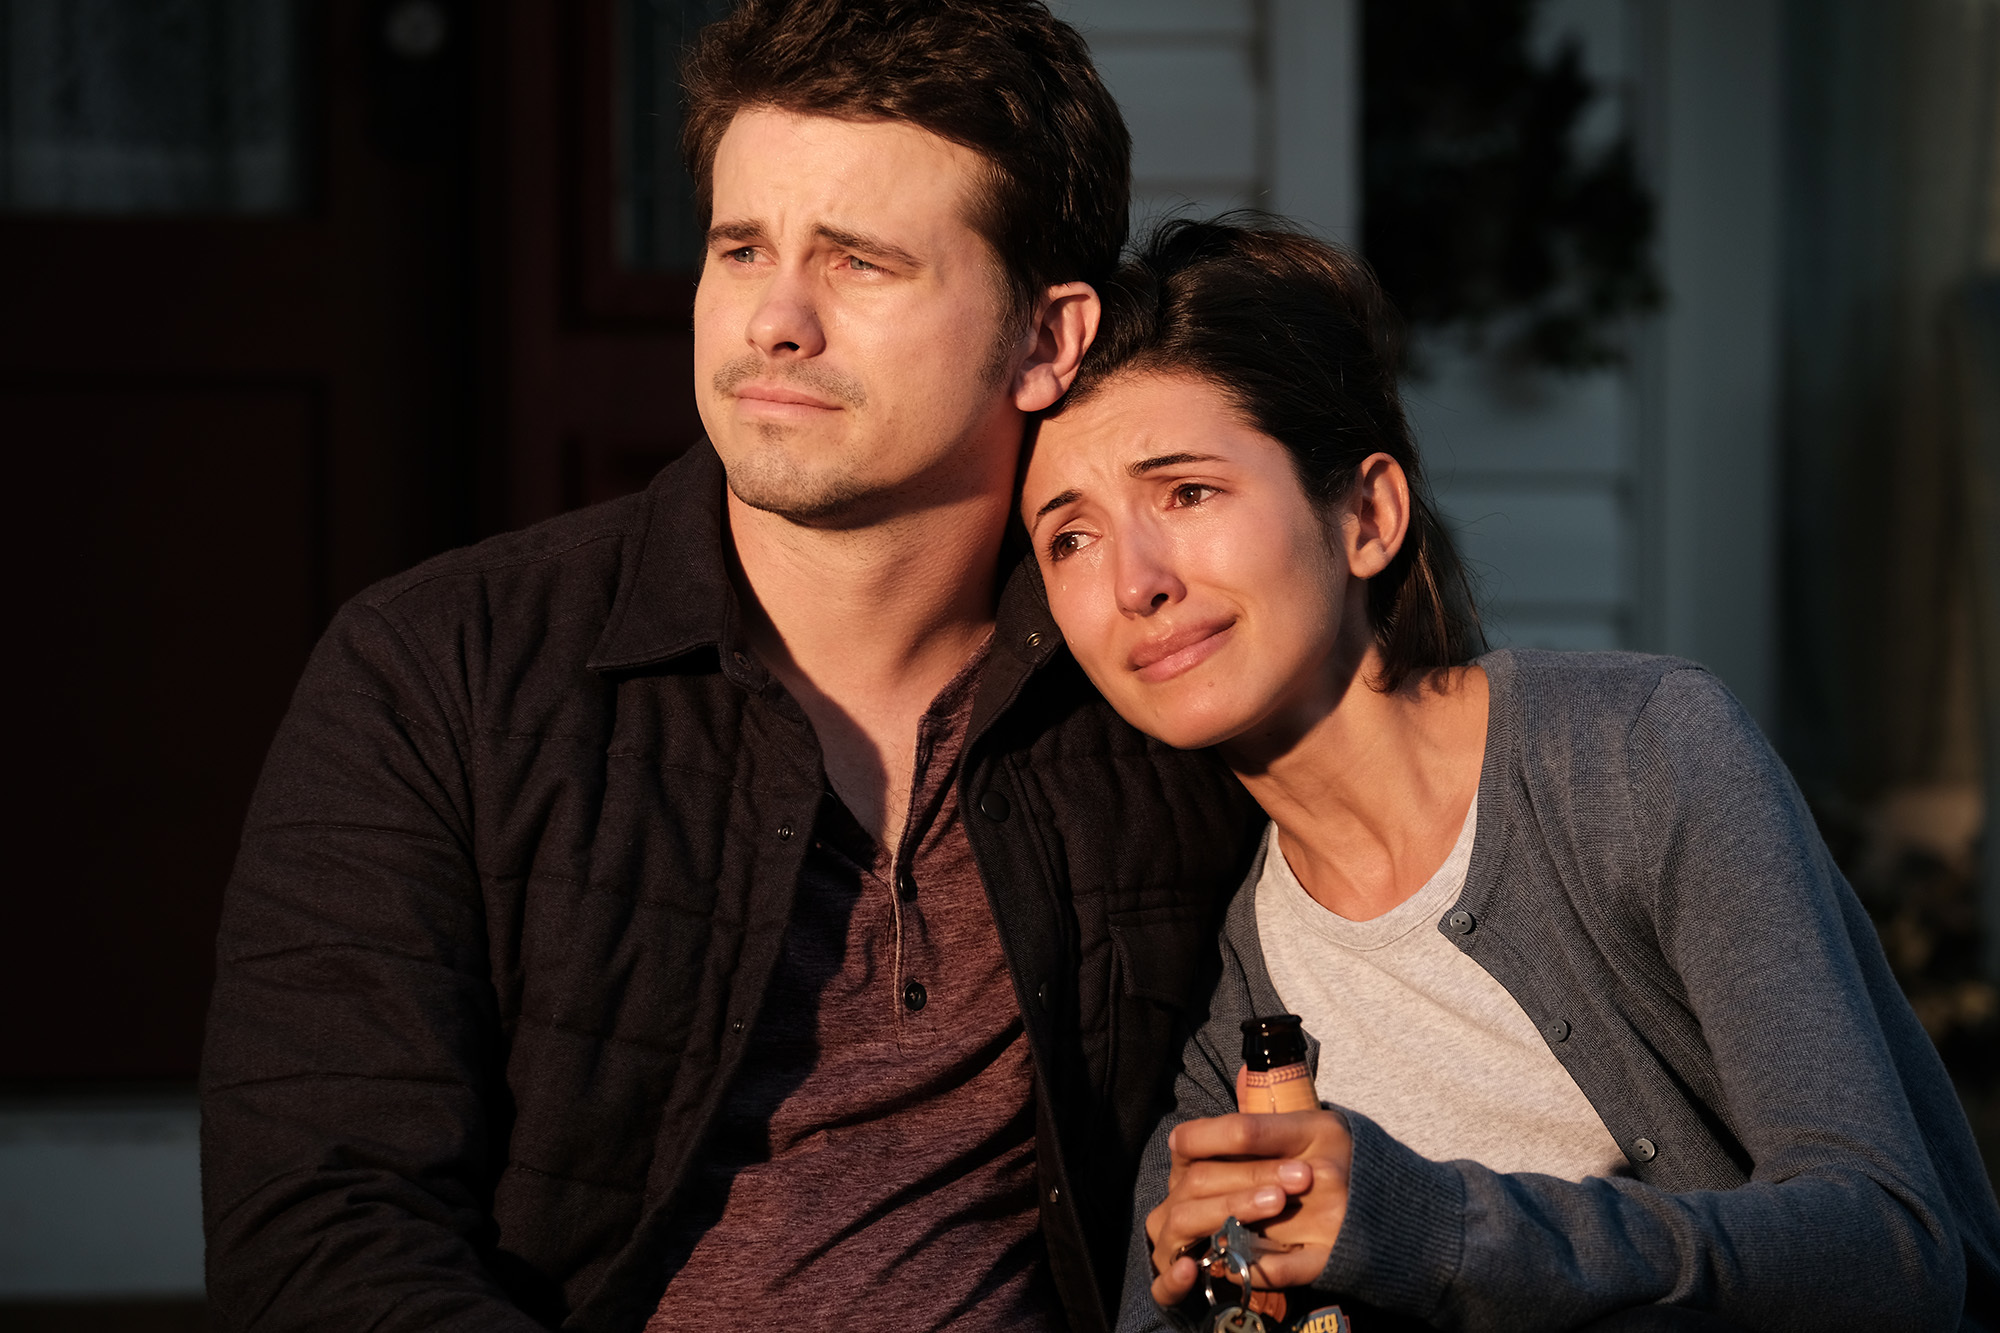 'Kevin (Probably) Saves The World' S1 Ep 7 Review: Team Kevin